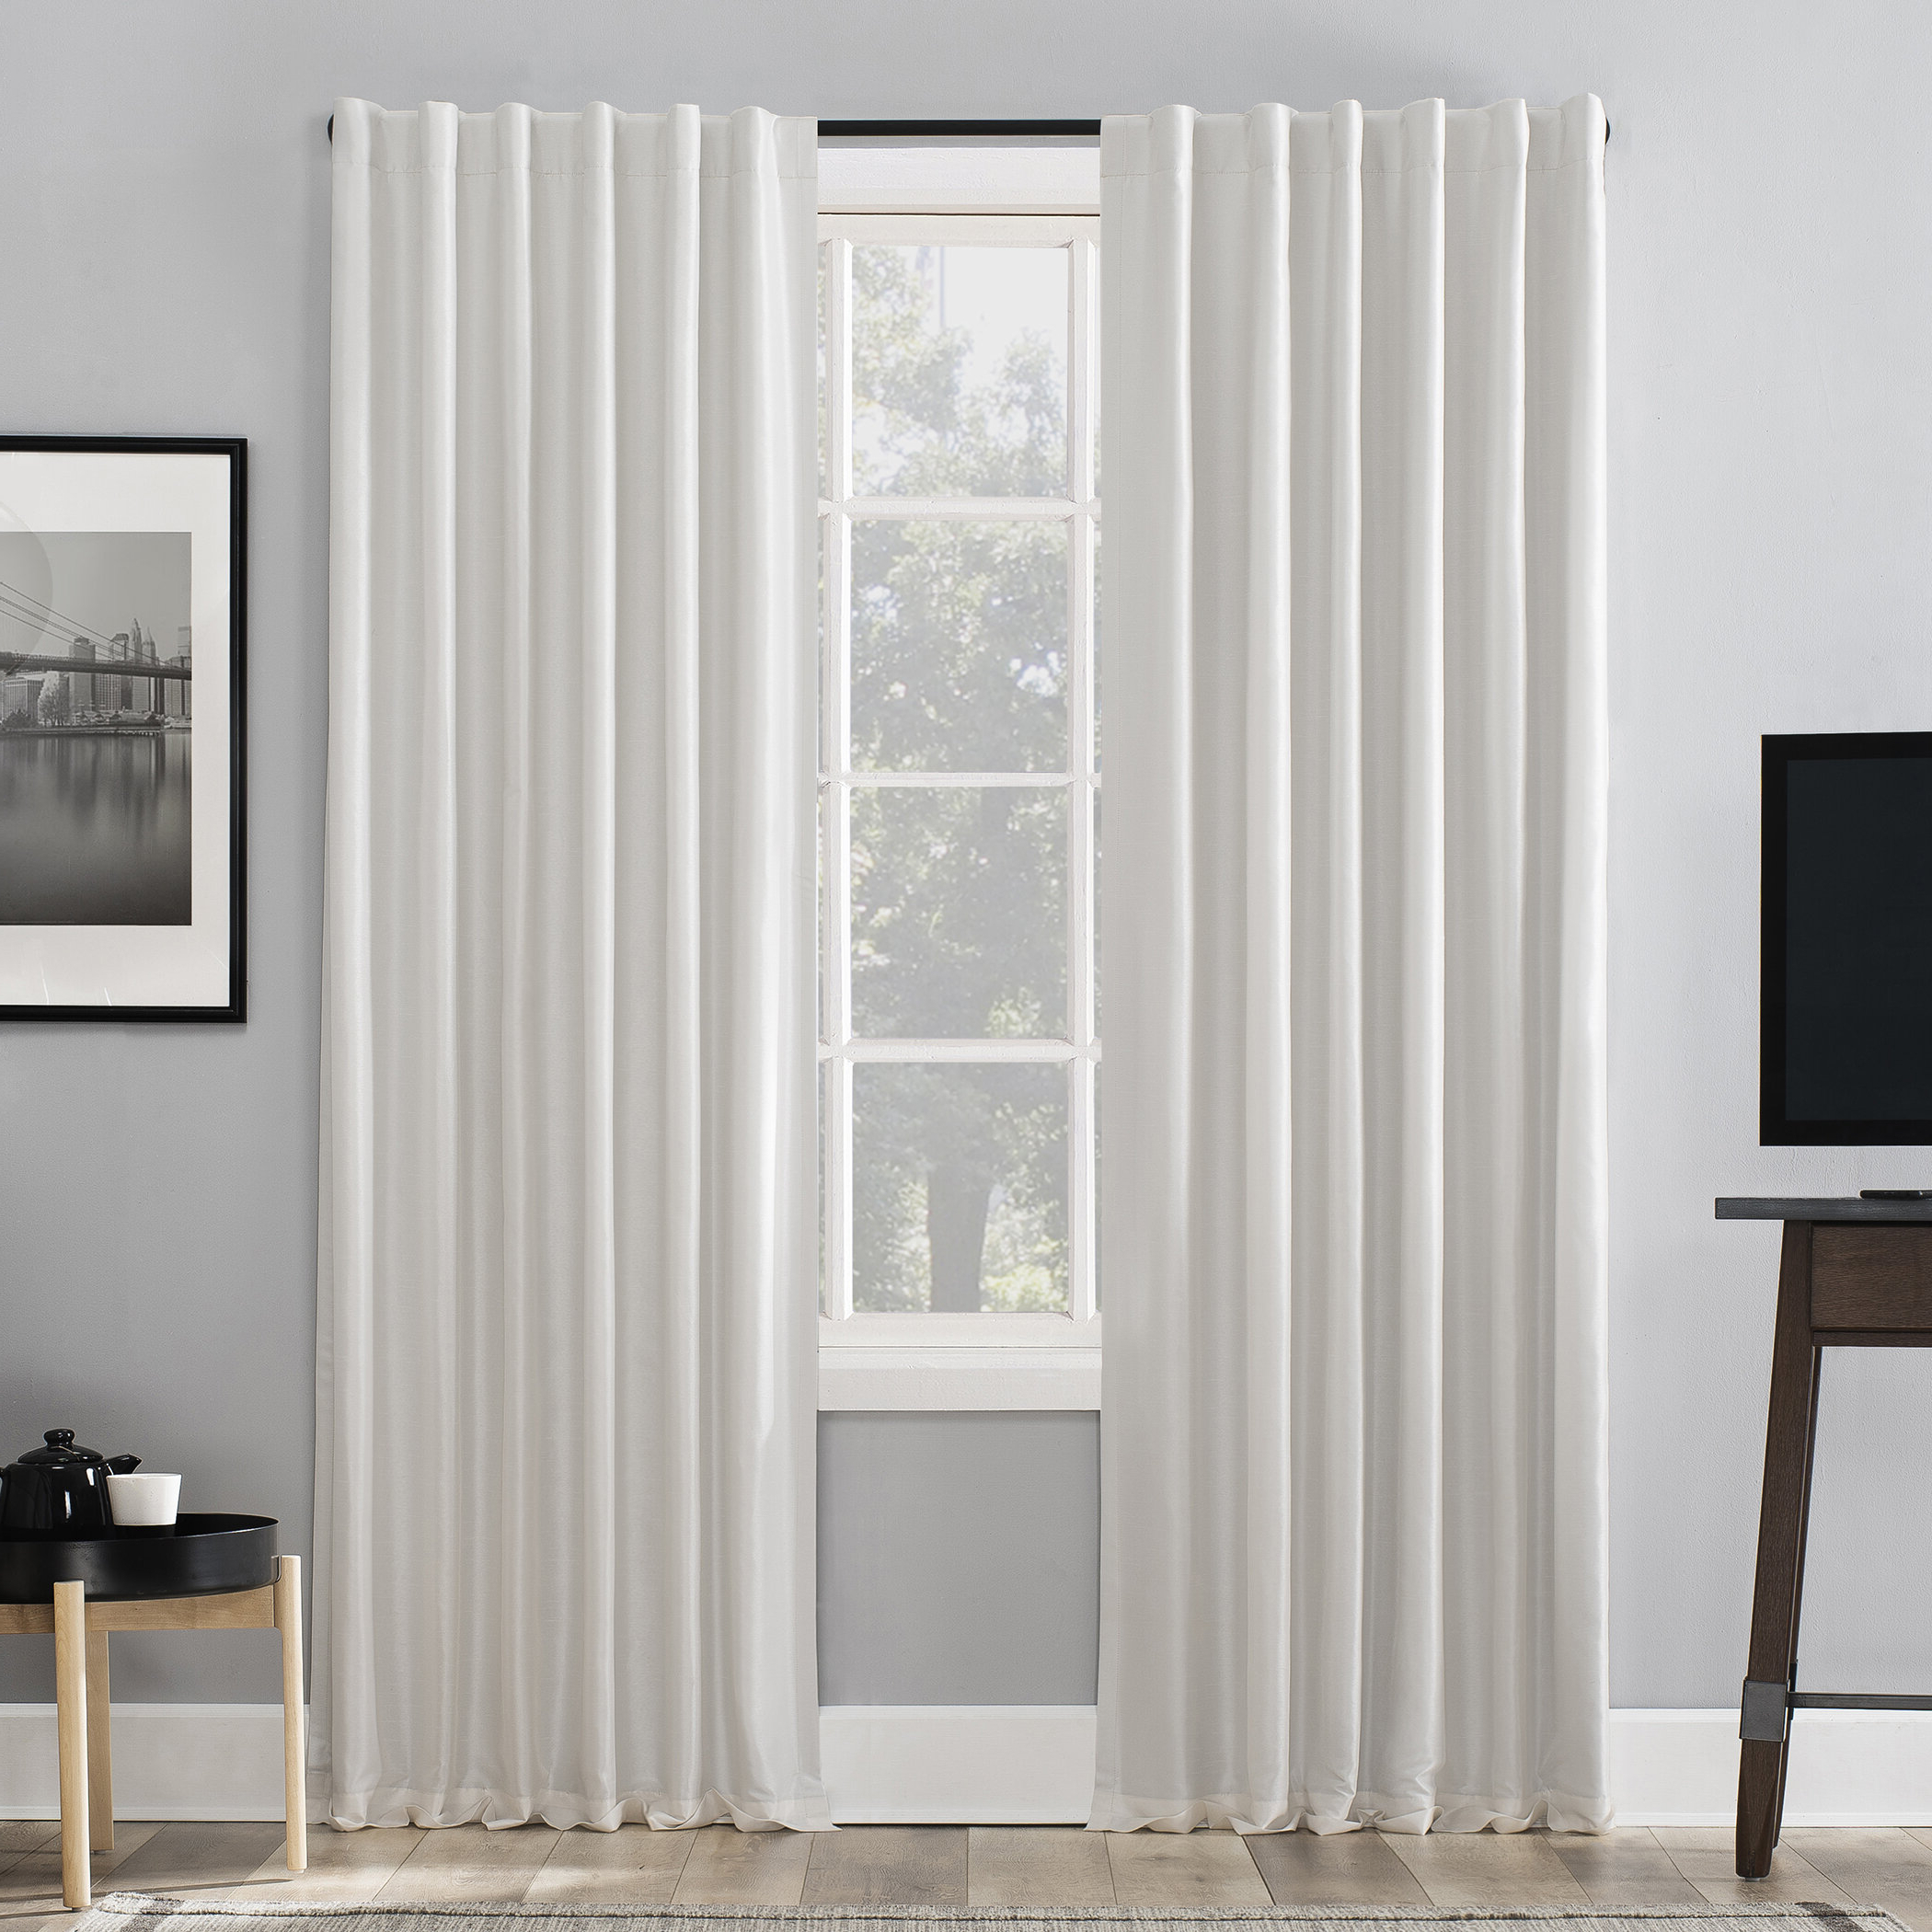 Evelina Faux Dupioni Silk Extreme Solid Max Blackout Thermal Tab Top Single  Curtain Panel Inside Widely Used Evelina Faux Dupioni Silk Extreme Blackout Back Tab Curtain Panels (Gallery 4 of 20)